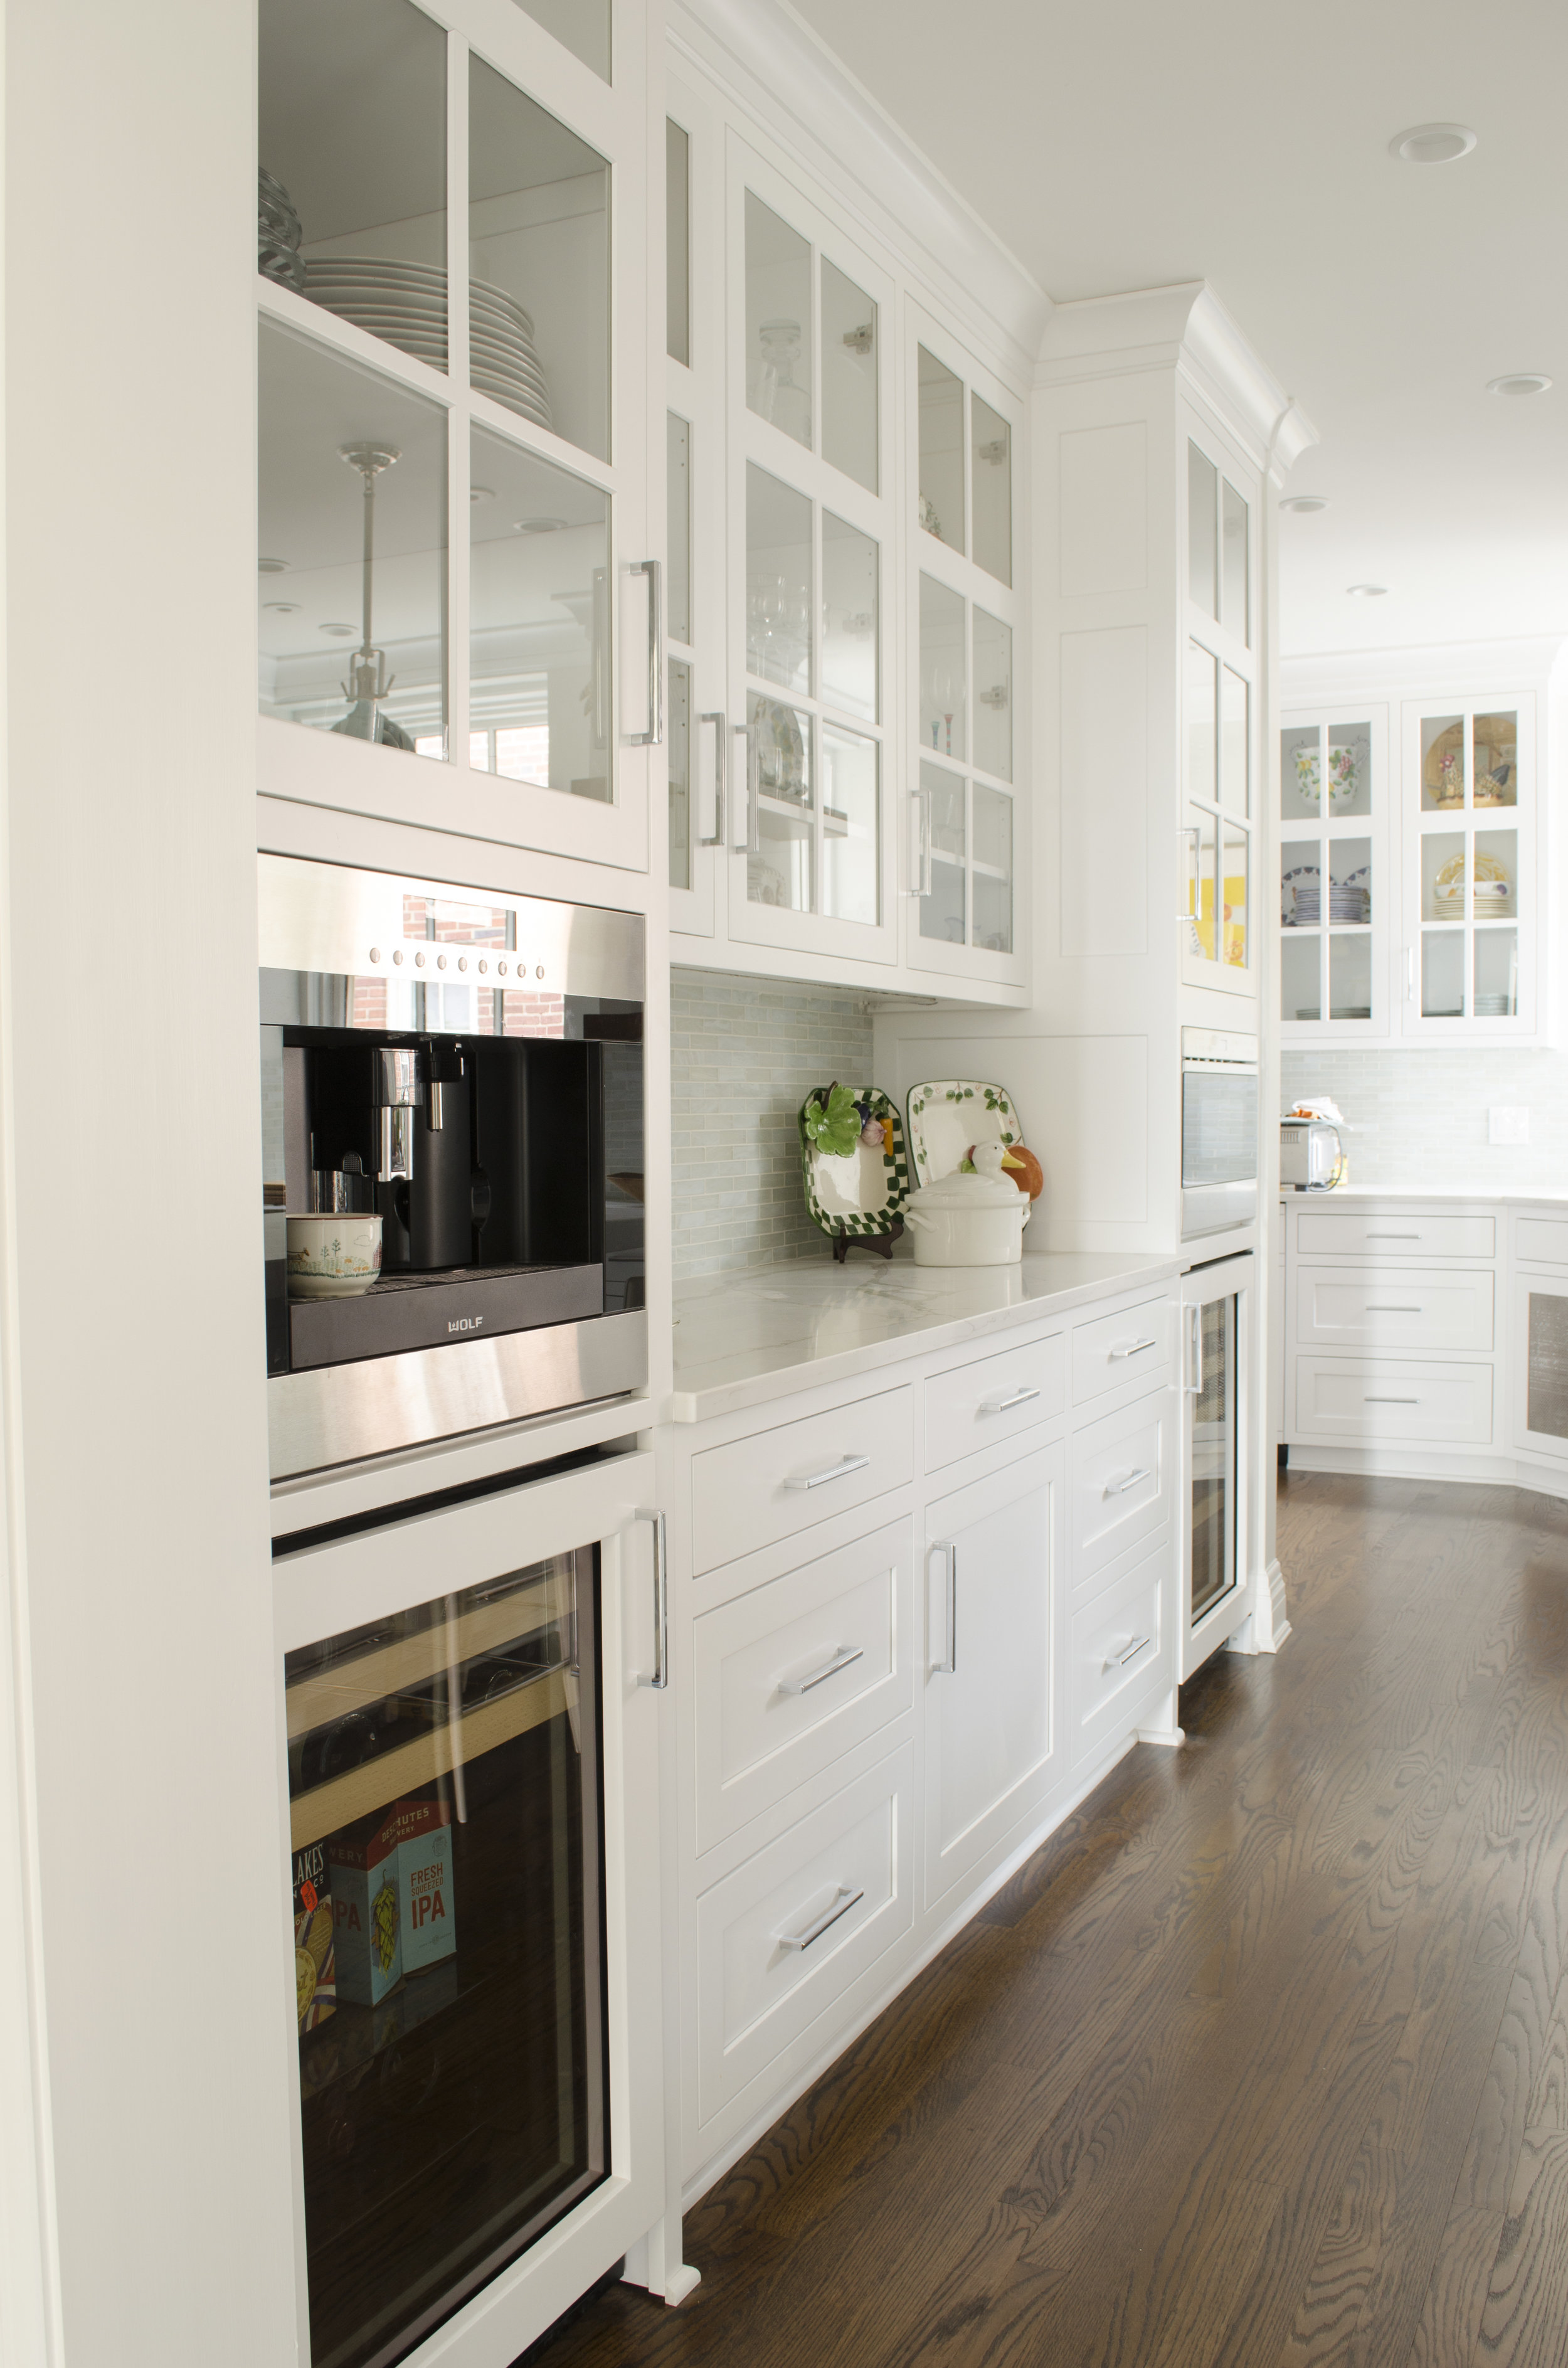 Stenson_Kitchen_05.jpg